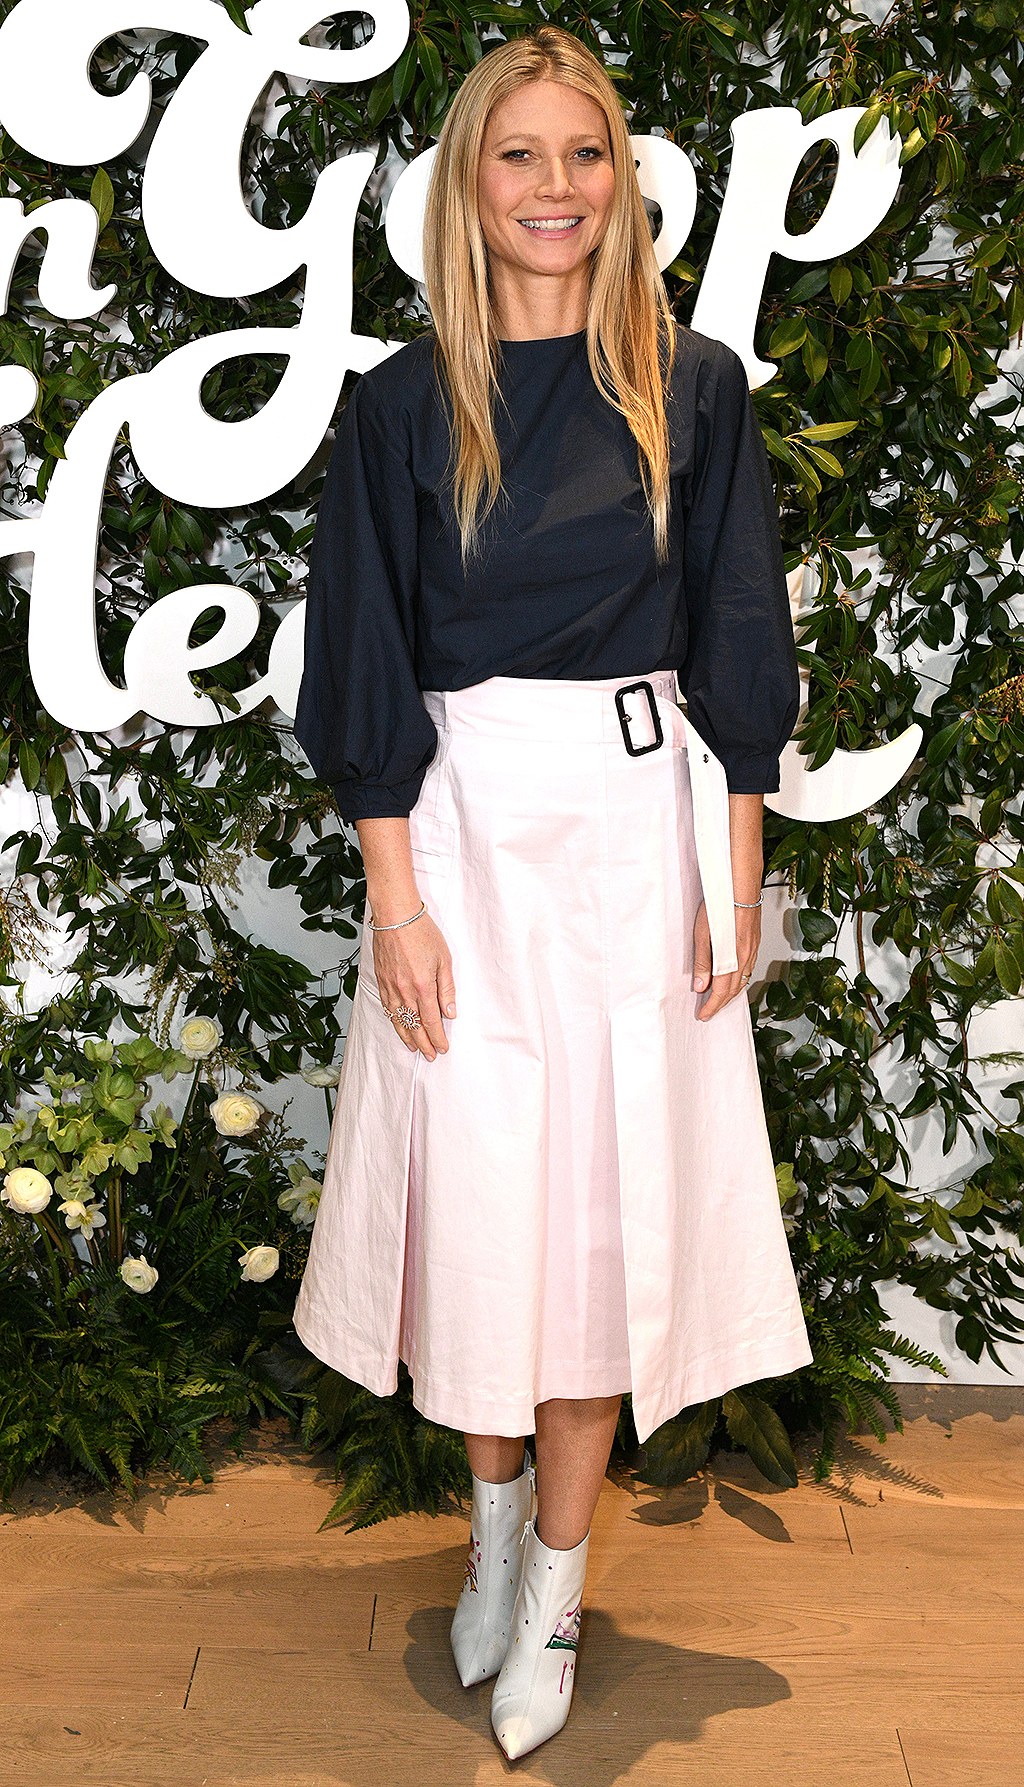 In goop Health Summit New York 2019